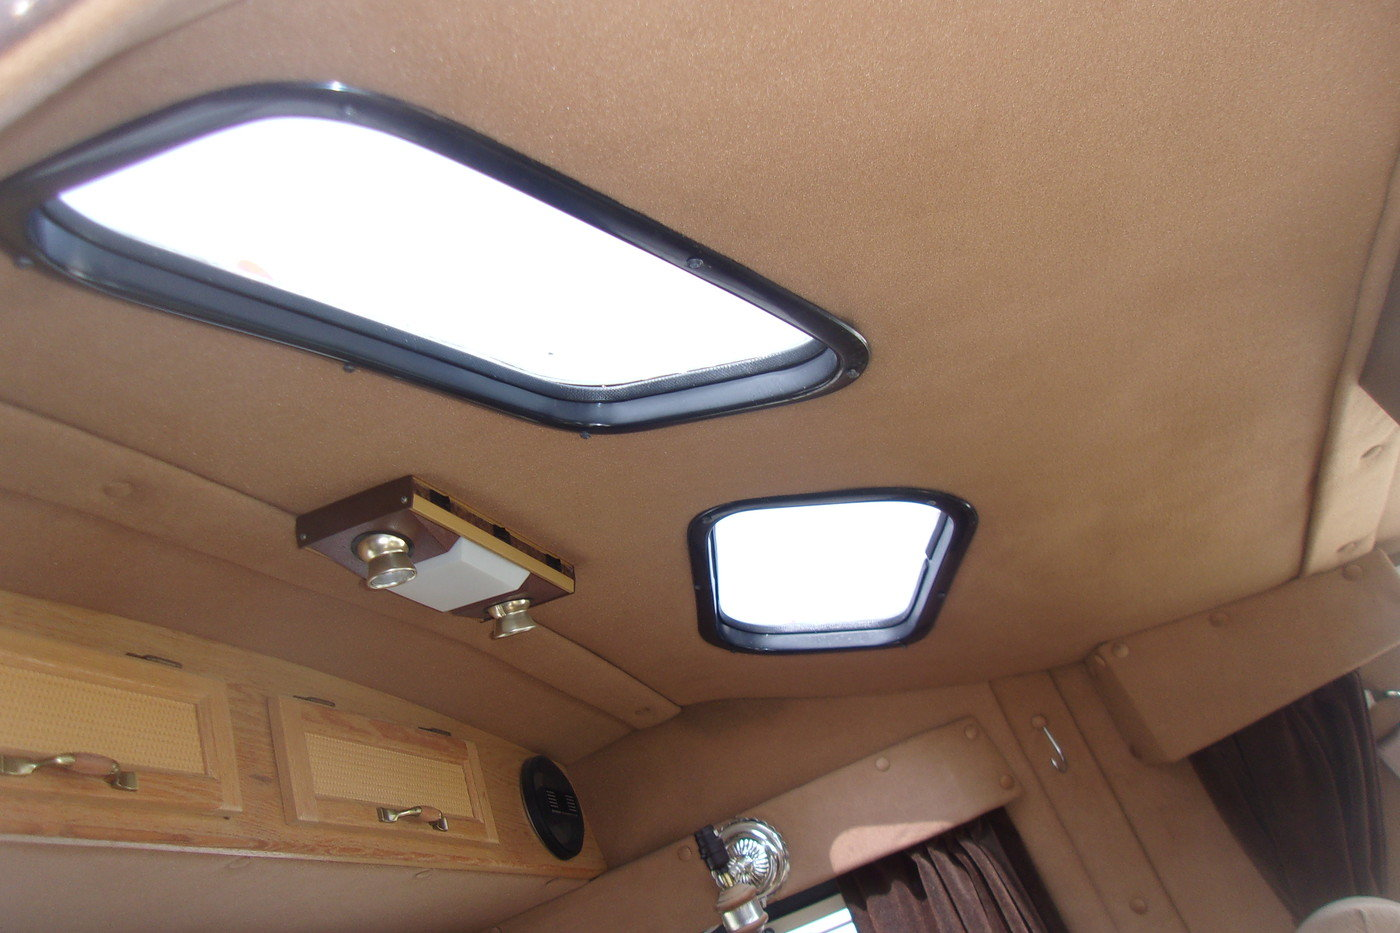 1987 Ford E350 Cabriolet Dually Van/Pickup For Sale (picture 5 of 6)